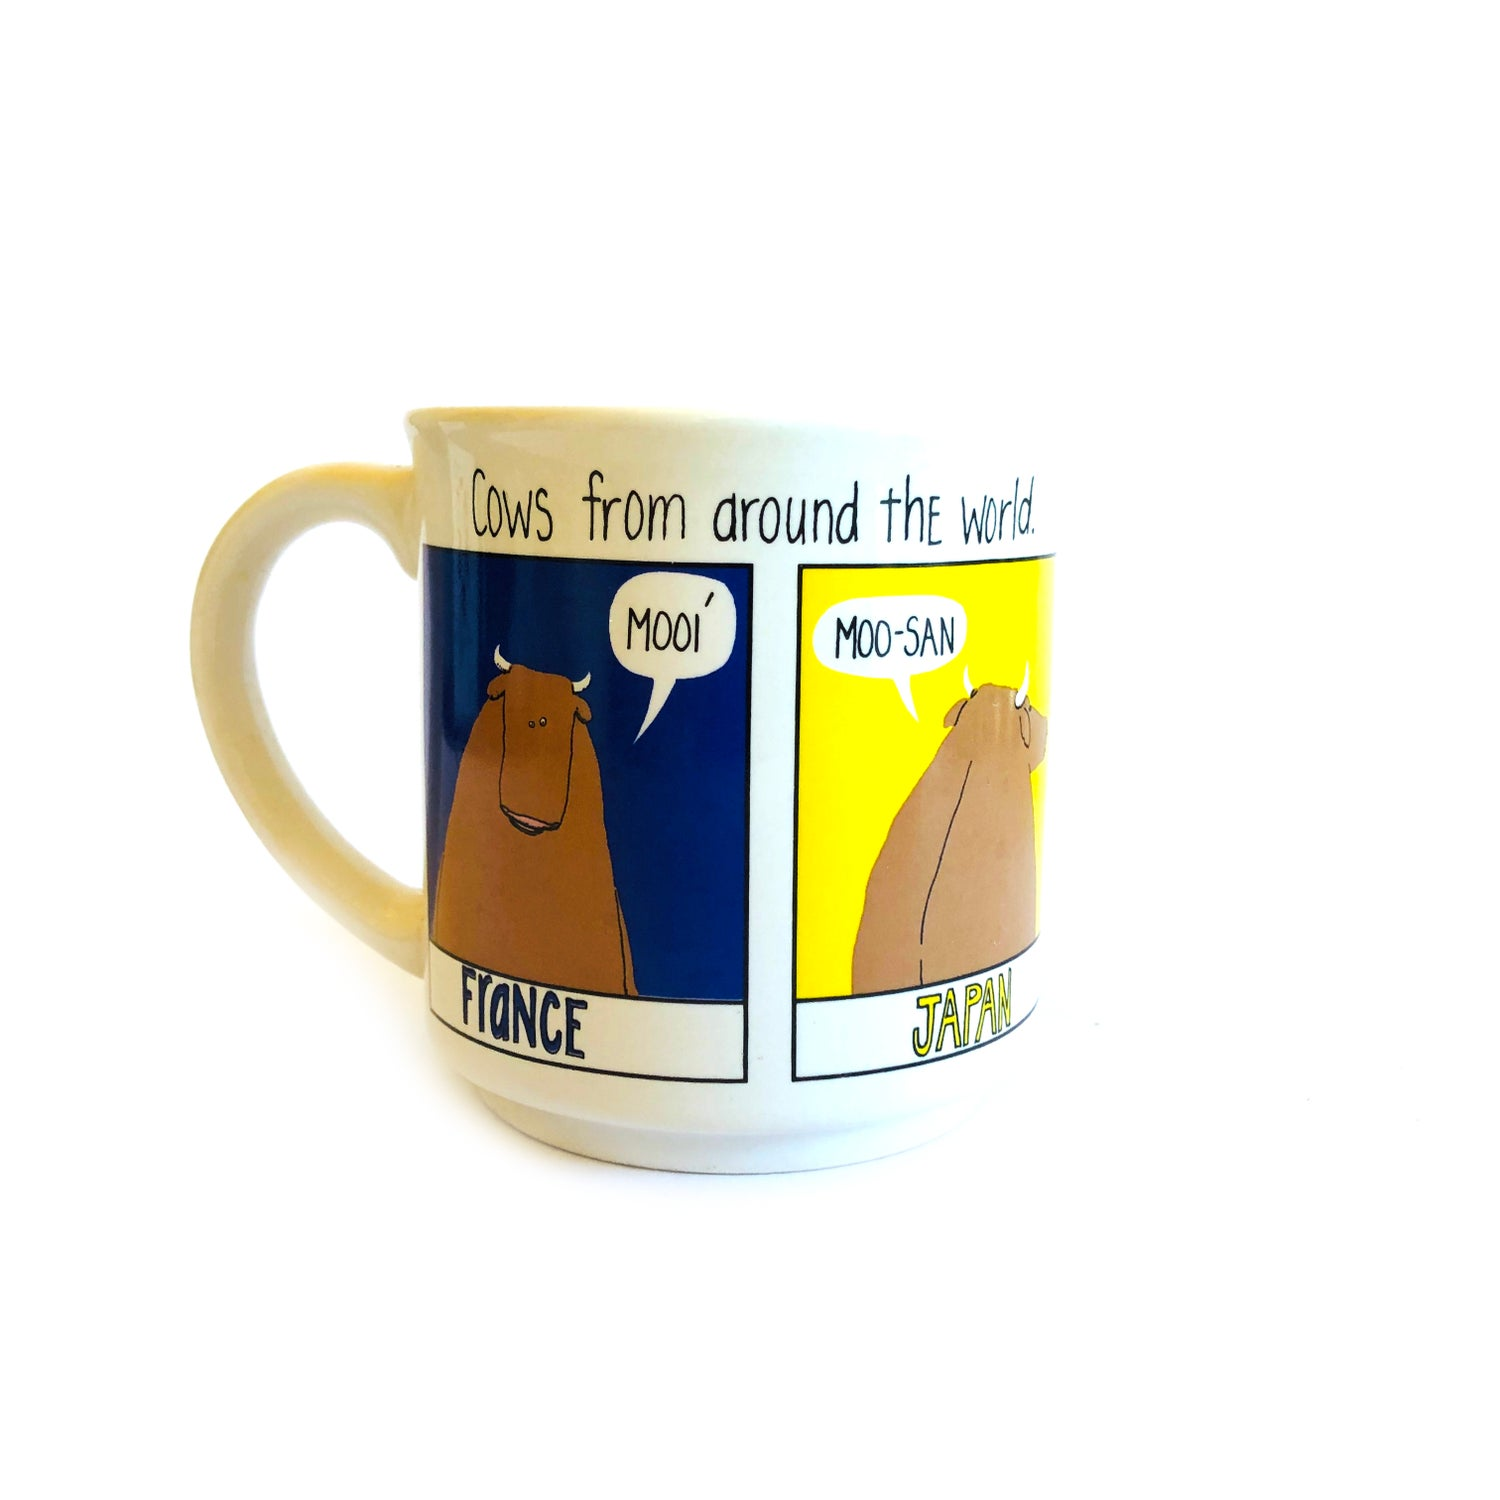 """Image of """"Cows from around the world"""" mug"""